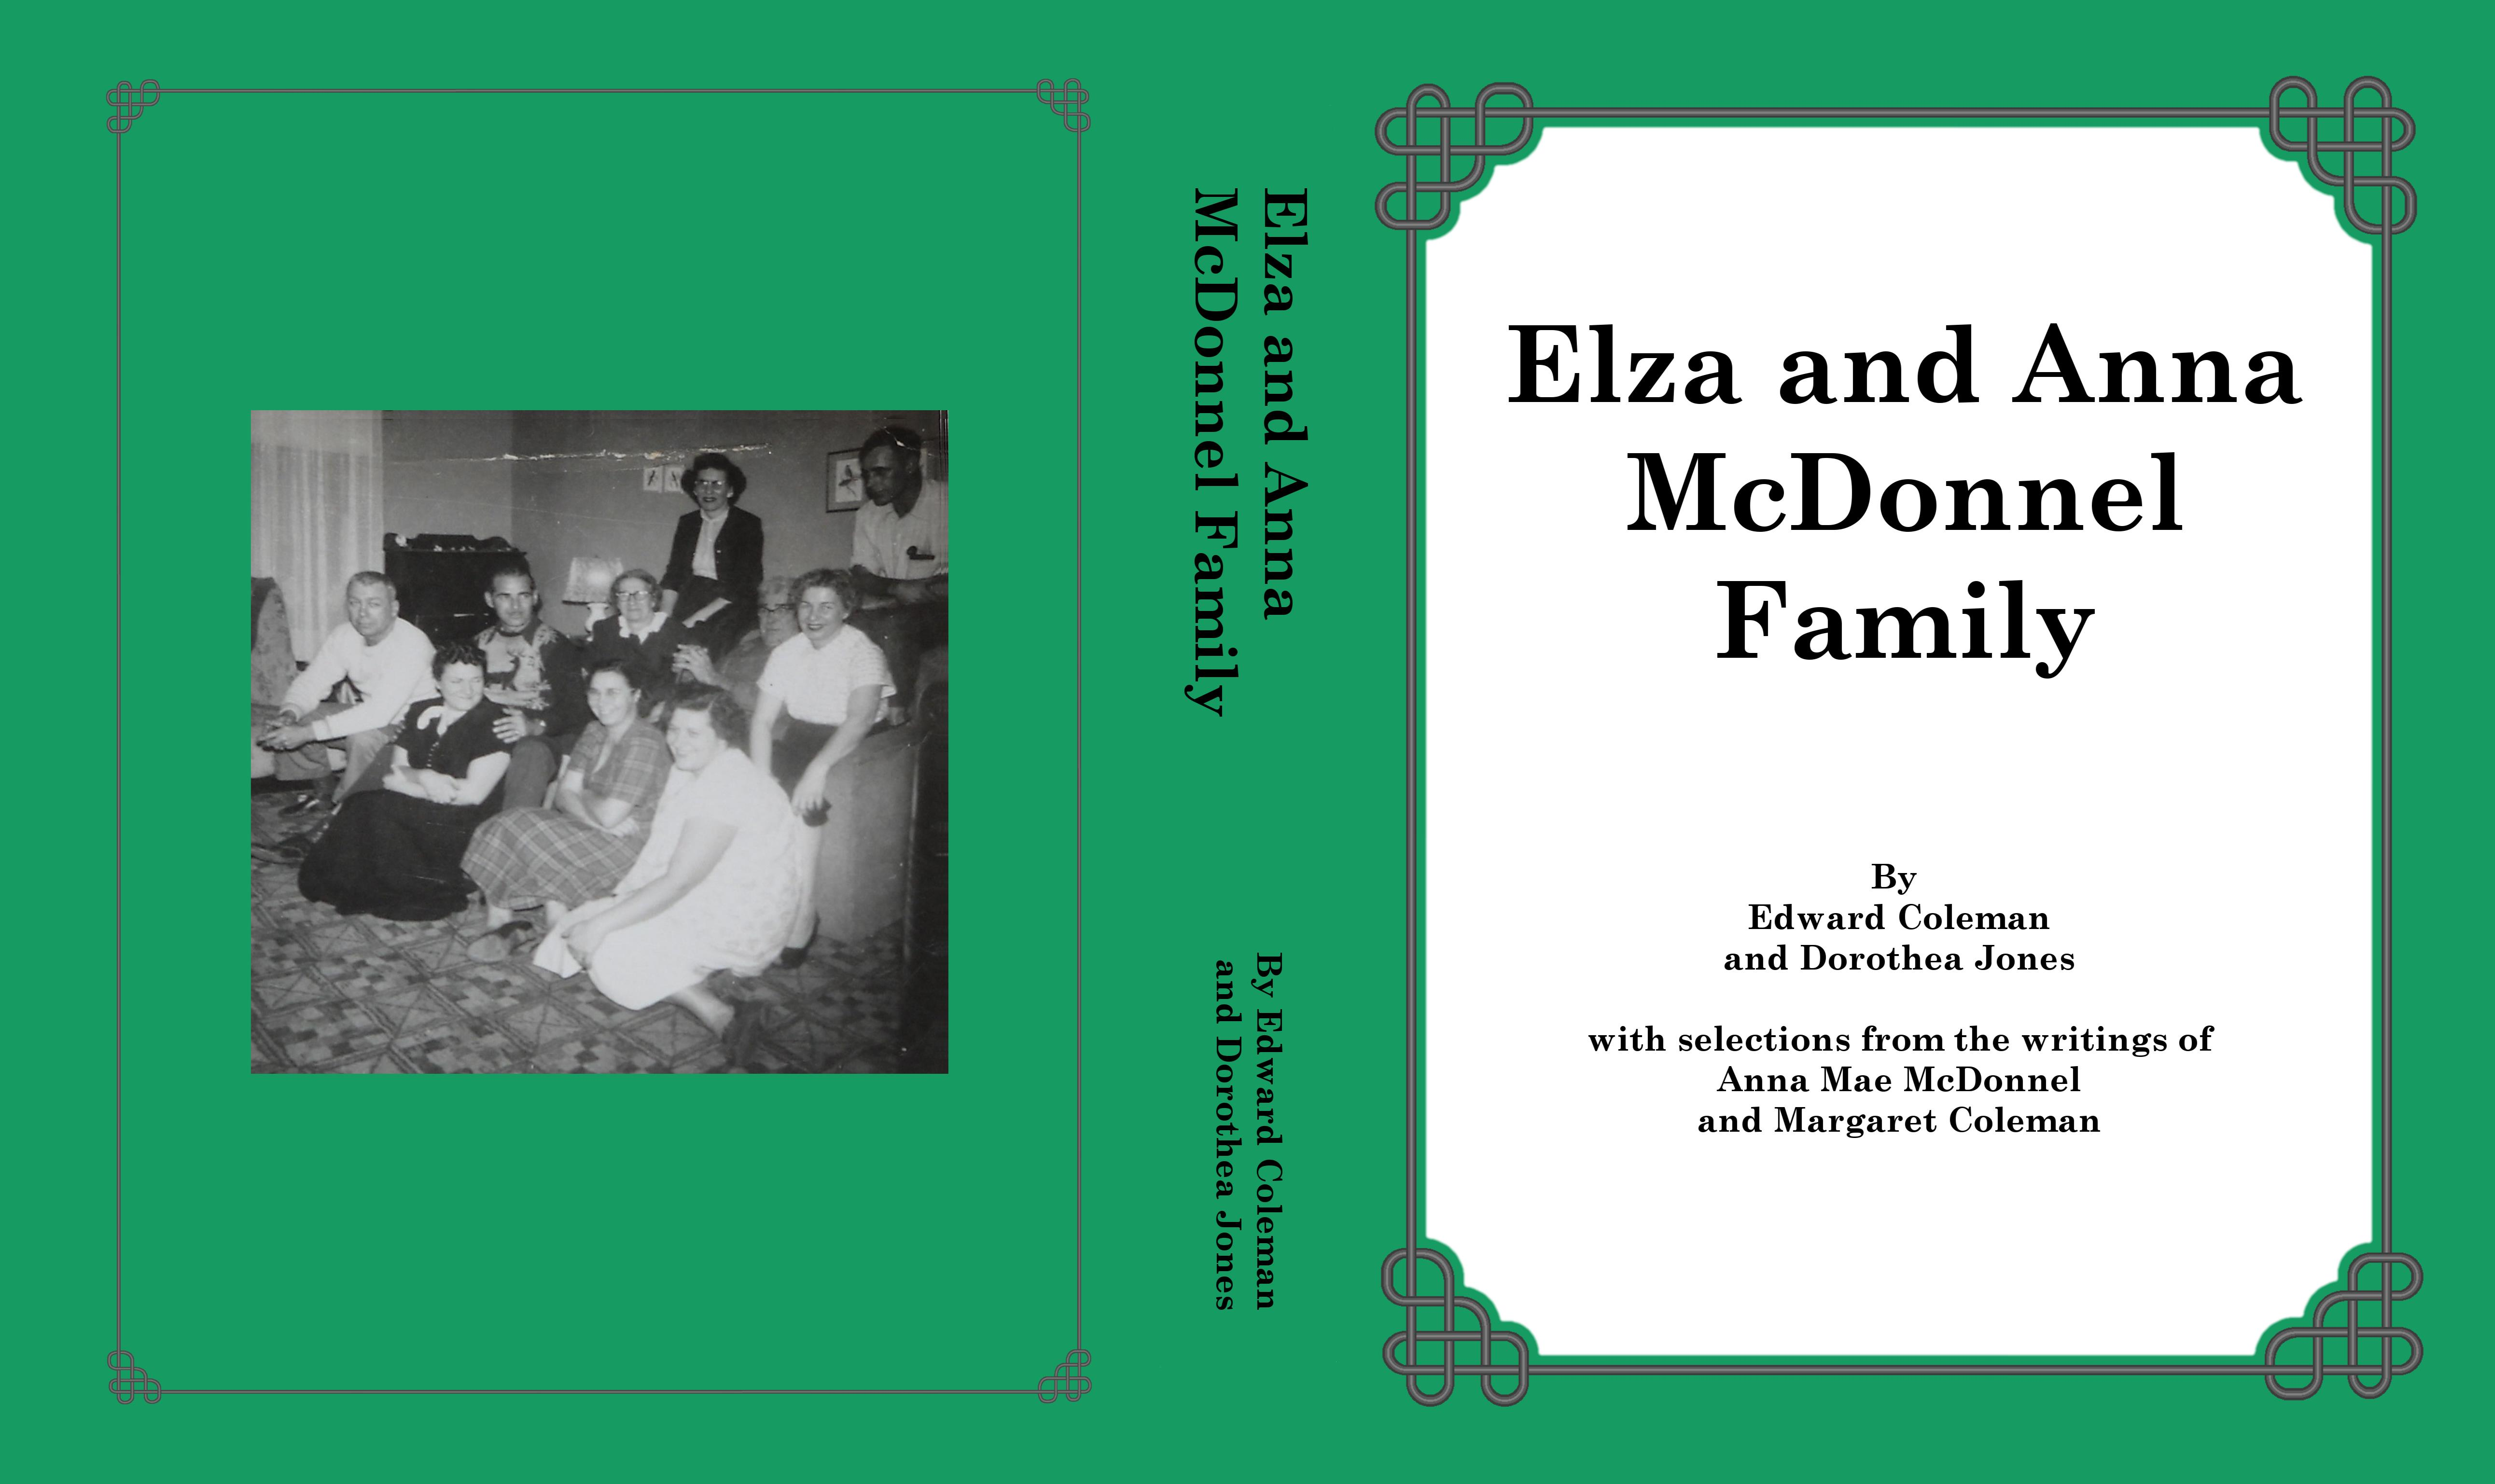 Elza and Anna McDonnel Family cover image